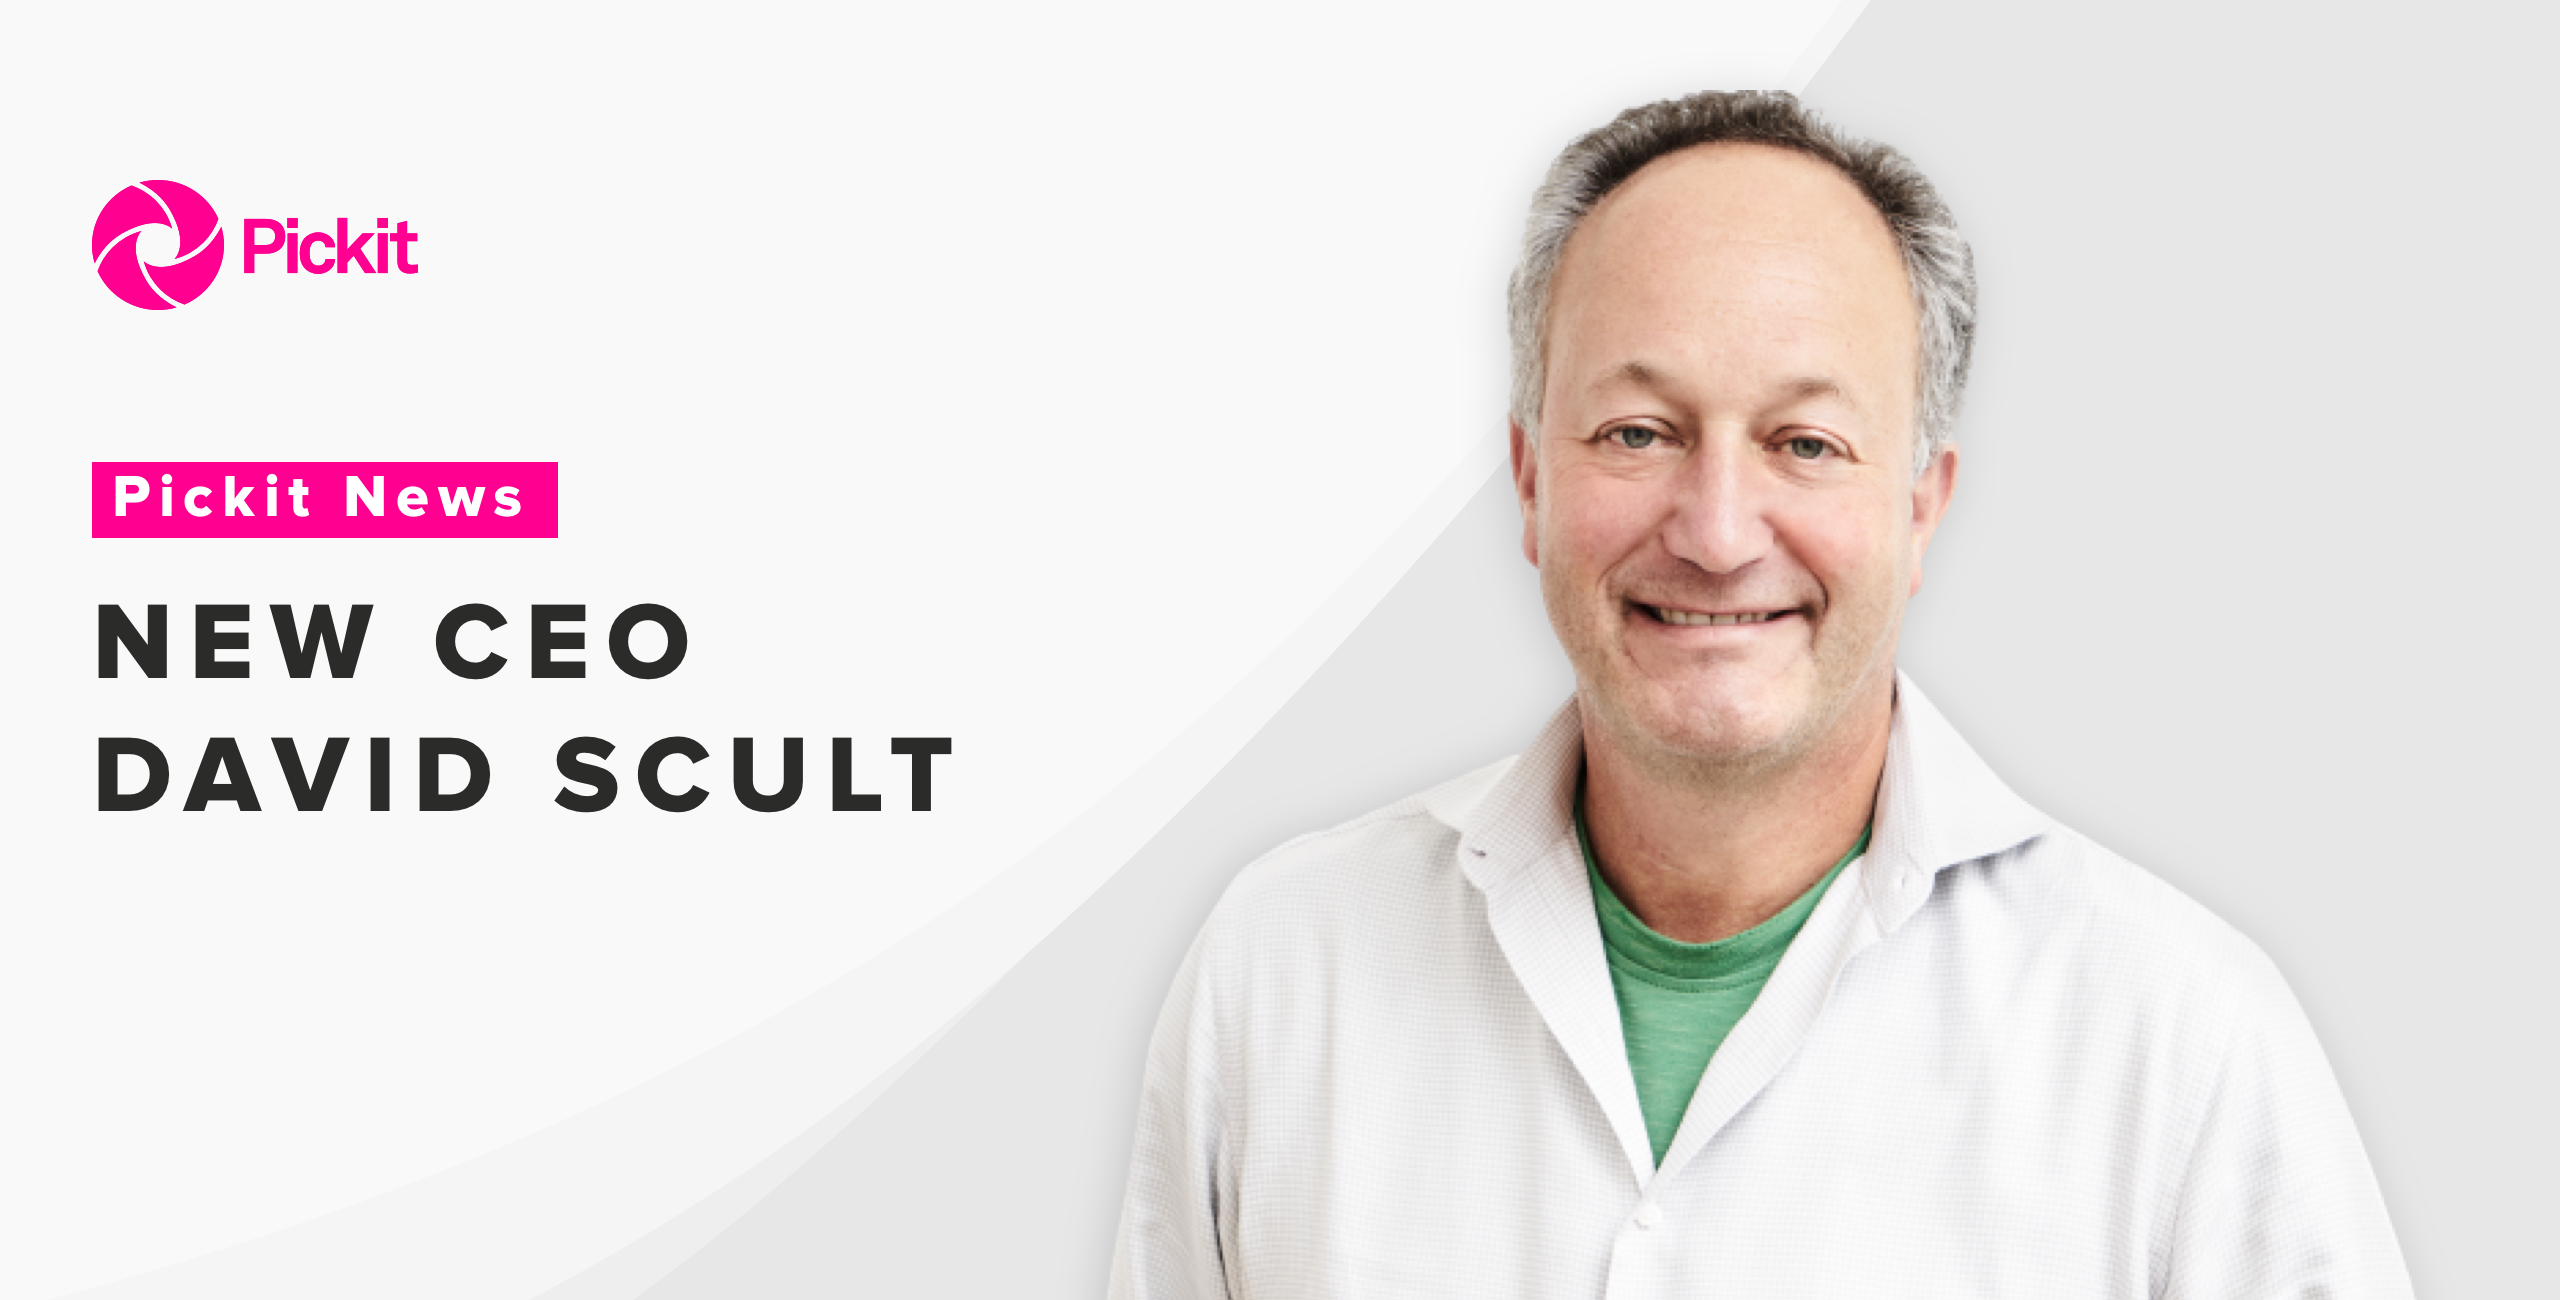 Pickit appoints David Scult as new CEO